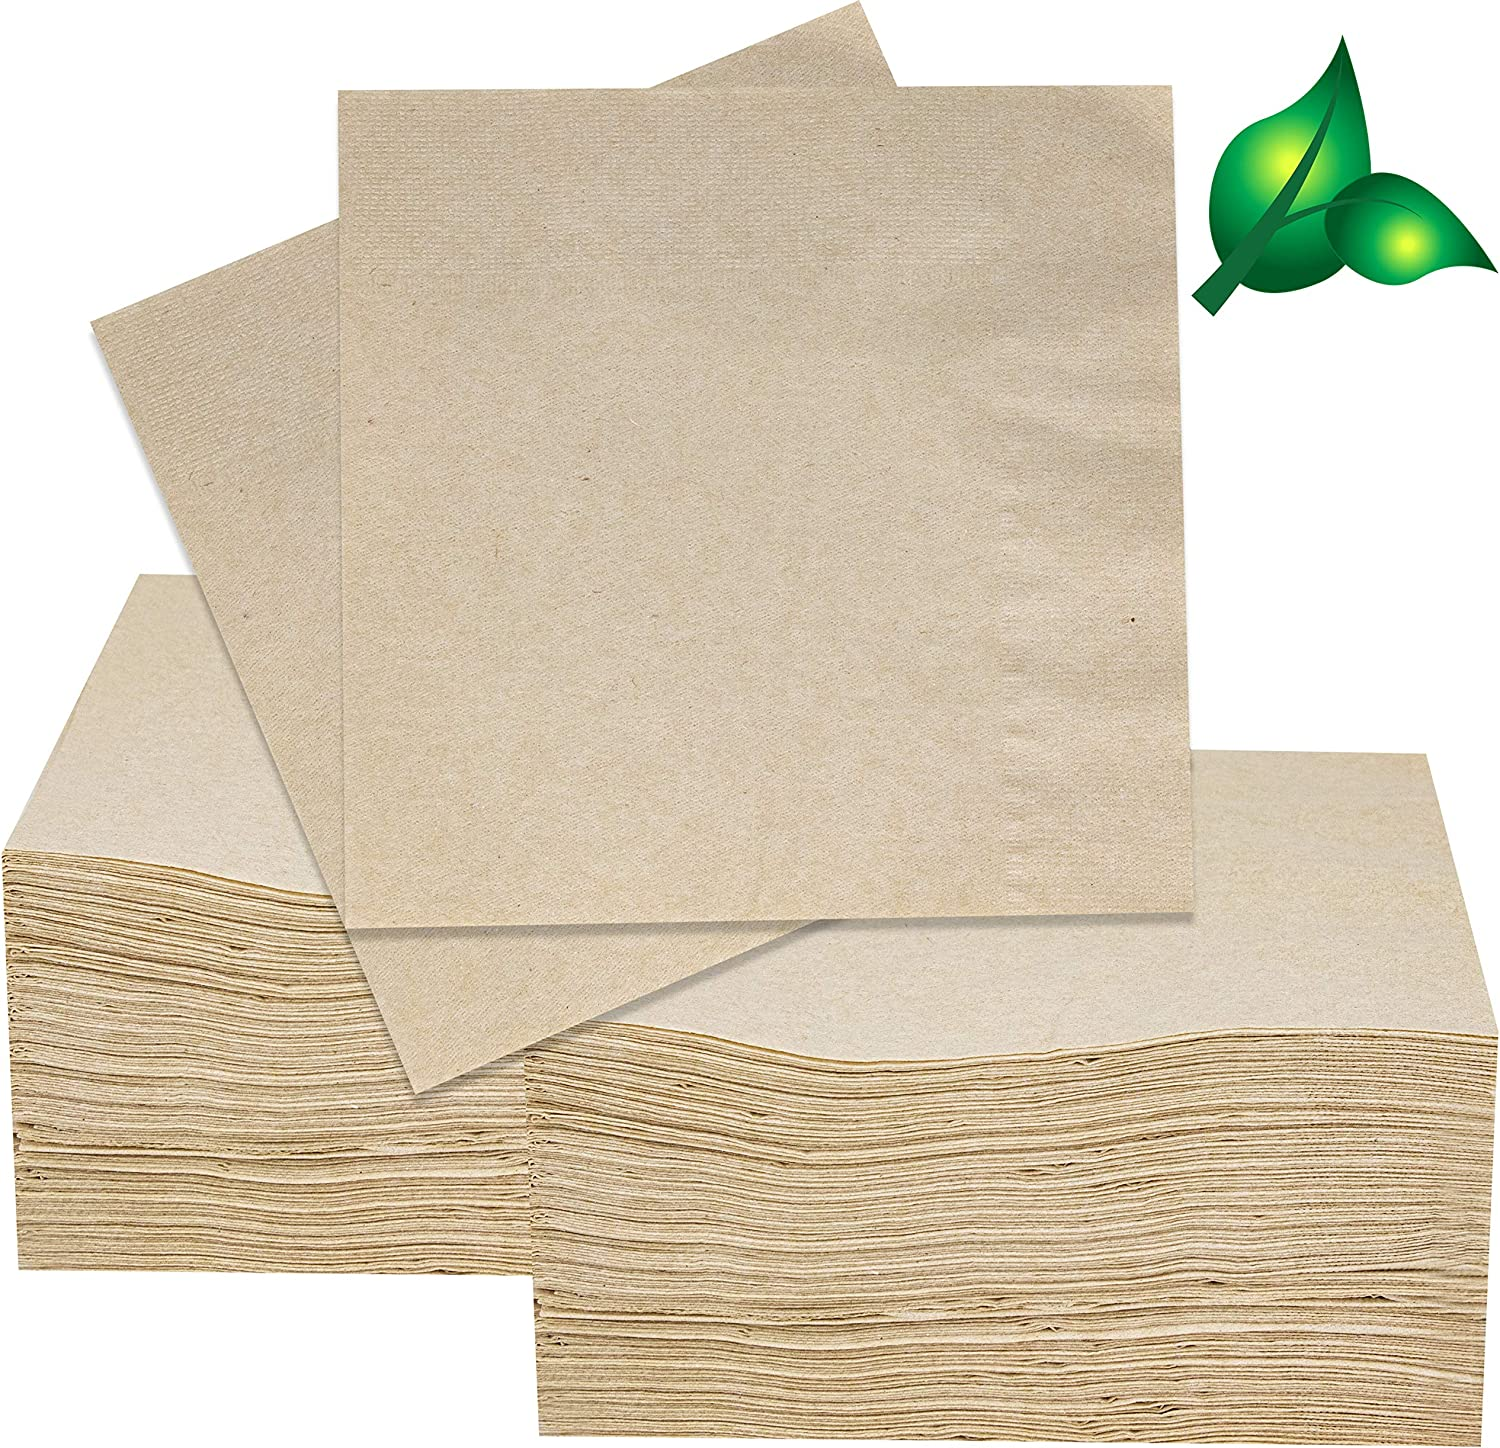 200 Eco Friendly Recycled Bar Biodegradable Napkins 5x5in Beverage Compostable